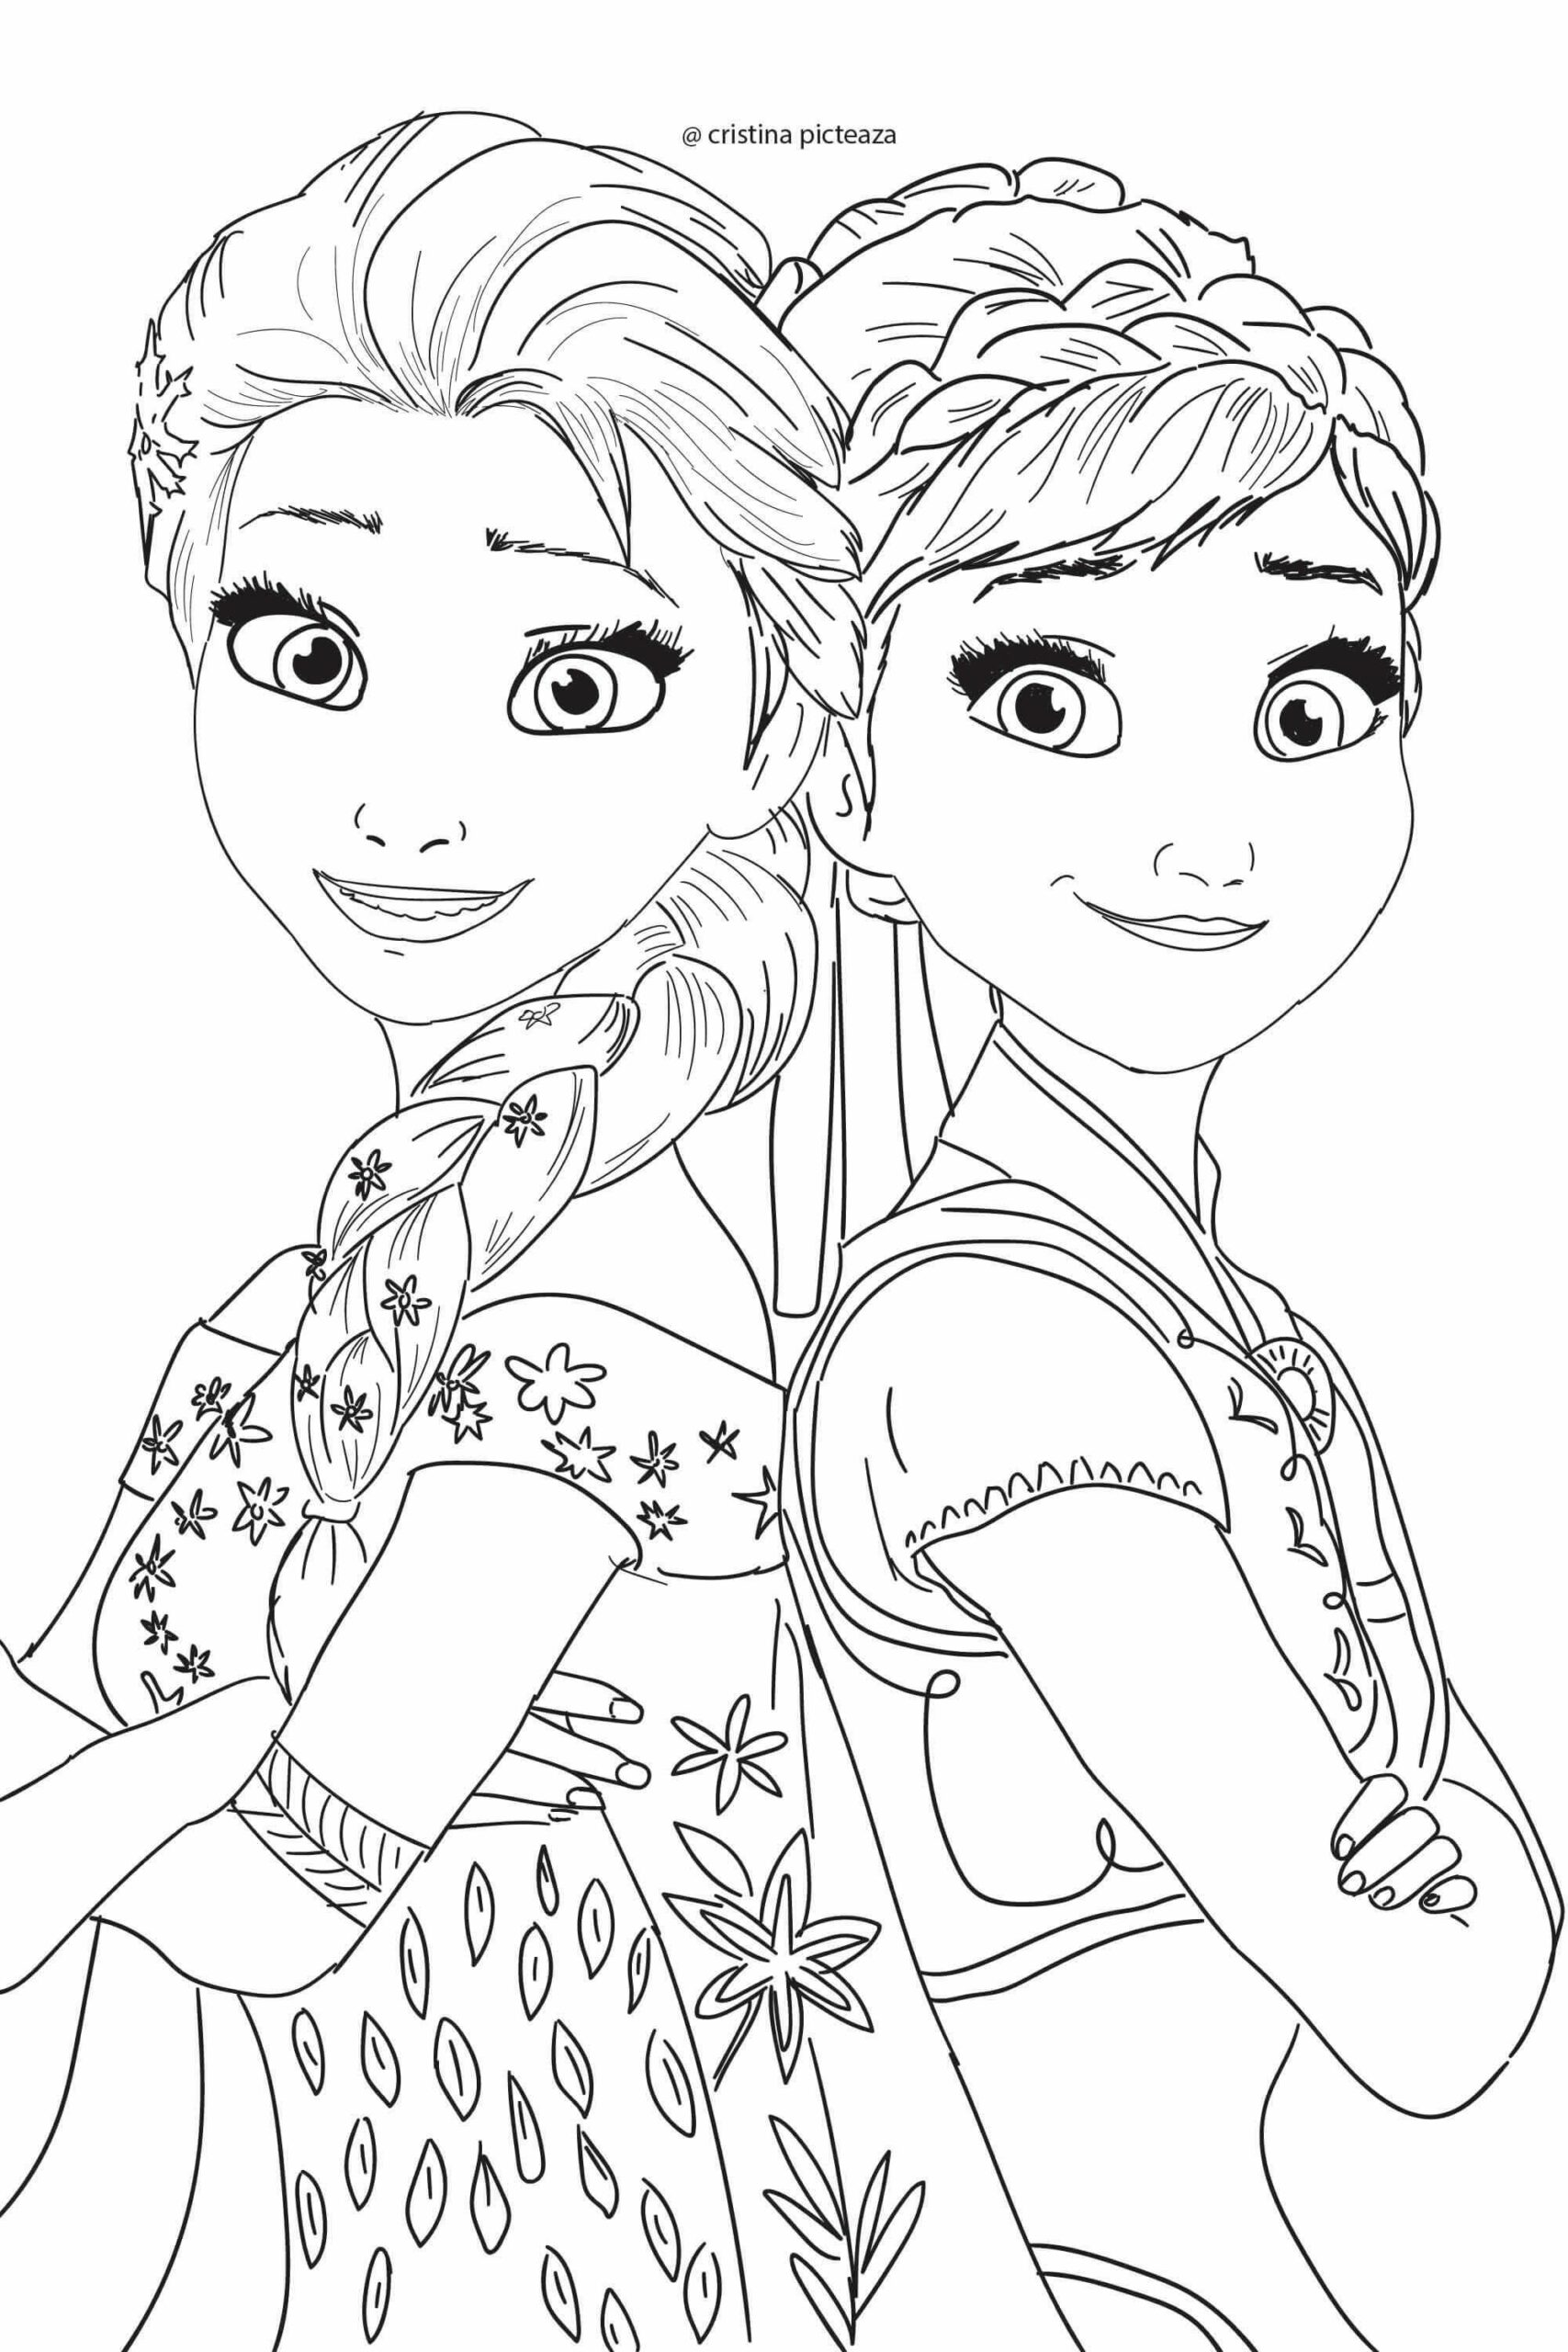 free frozen coloring pages frozen coloring pages animated film characters elsa coloring frozen pages free